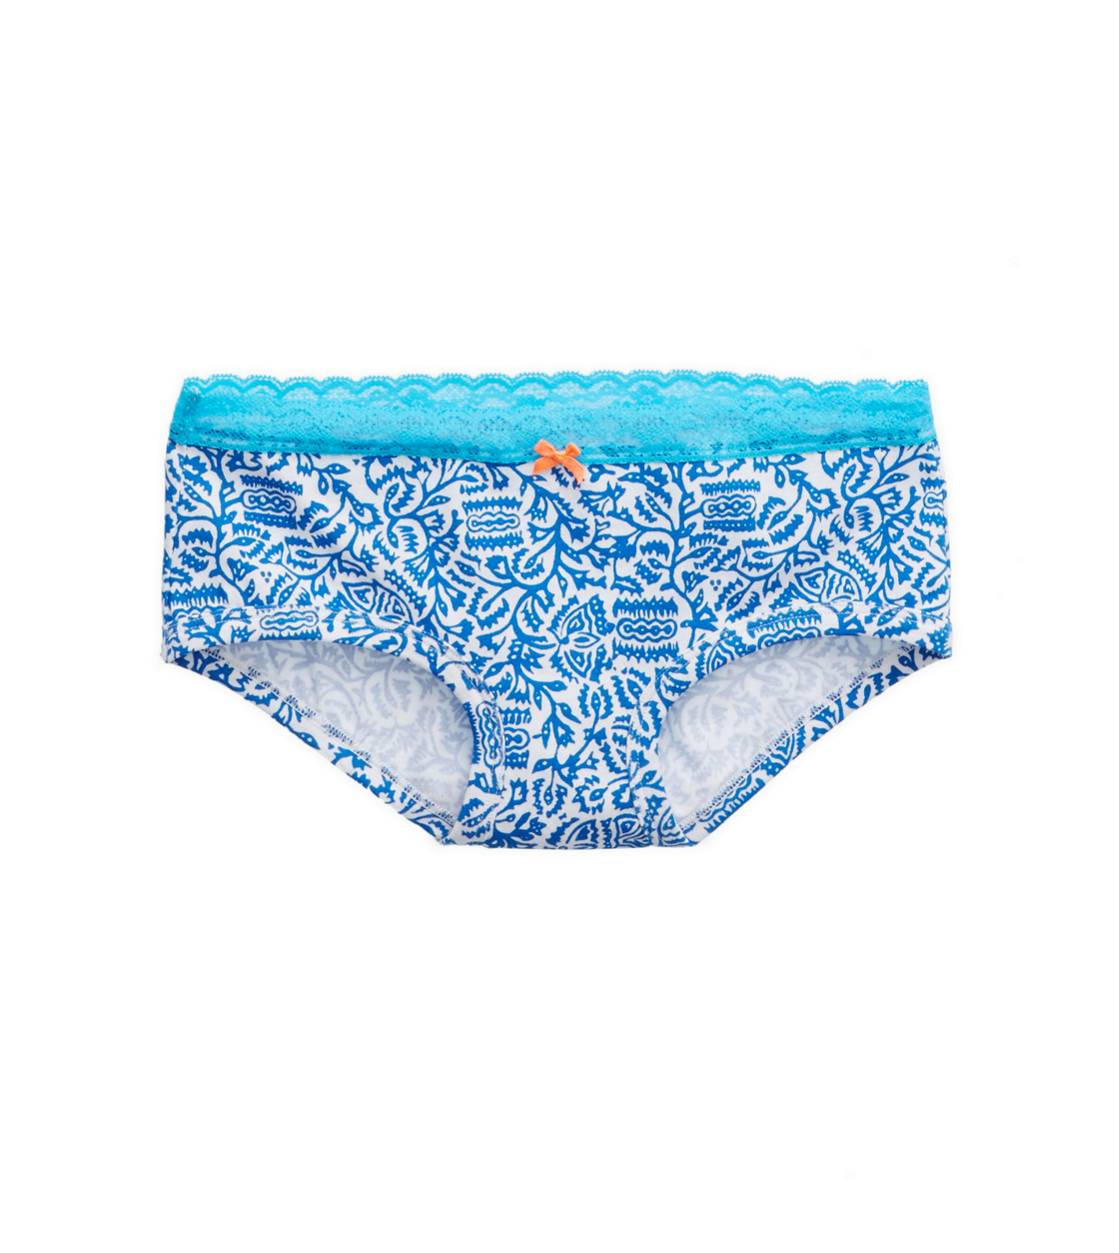 Light Blustead Aerie Printed Boybrief